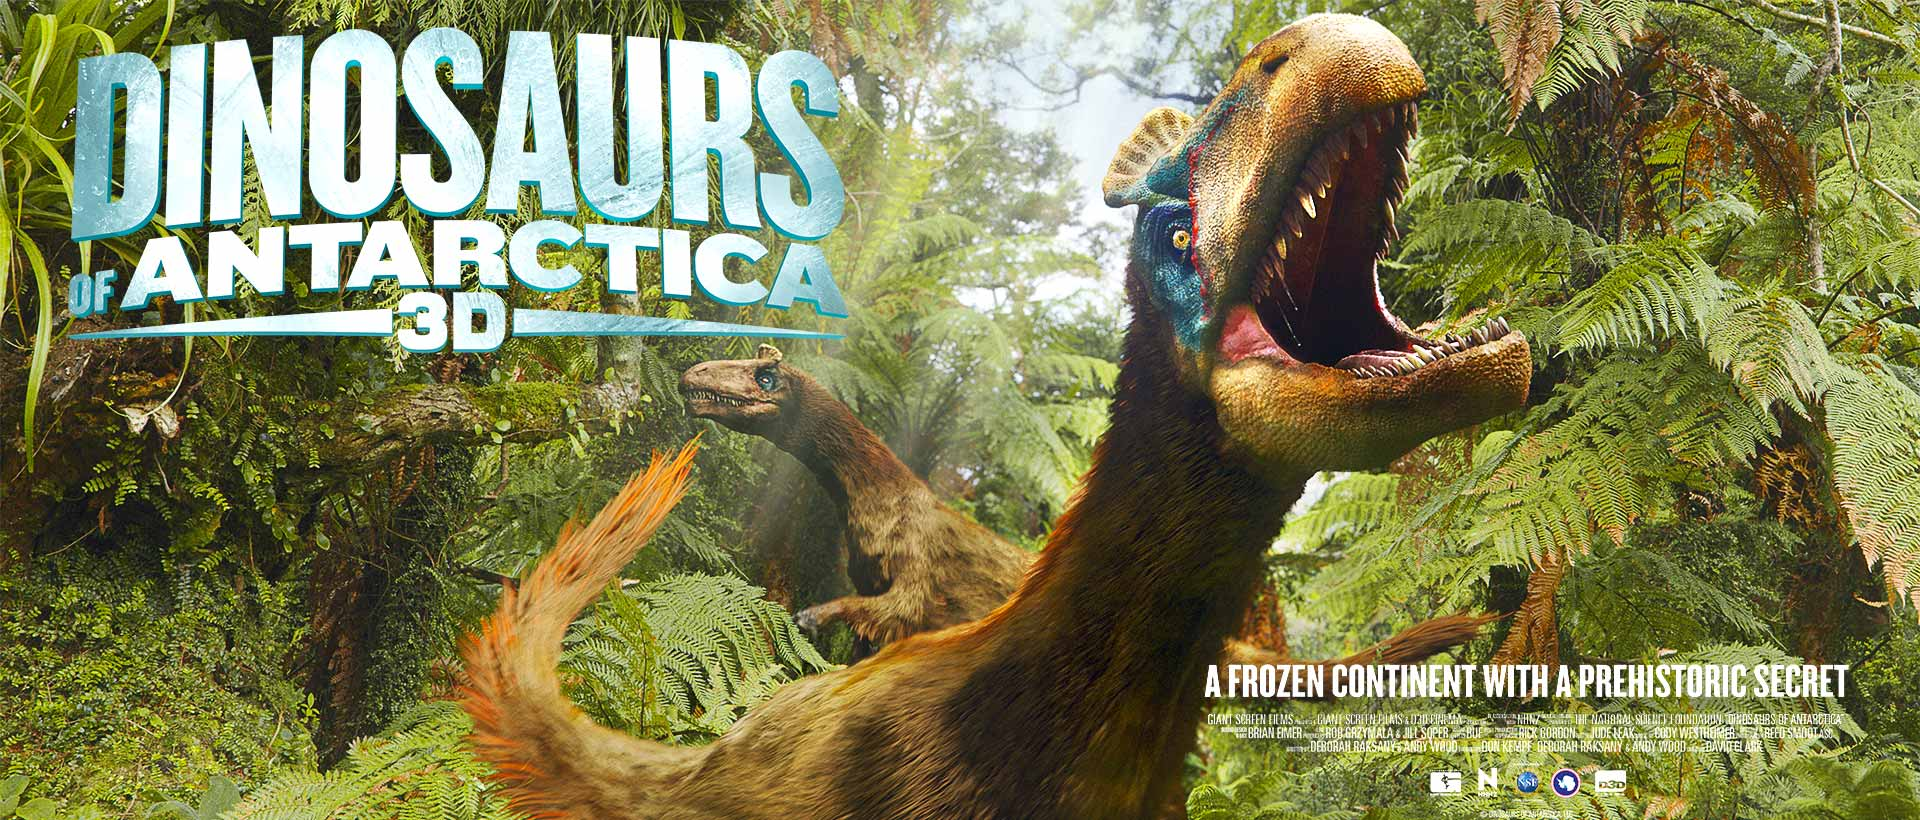 Dinosaurs of Antarctica 3D movie poster with Dino roaring in front of a jungle.